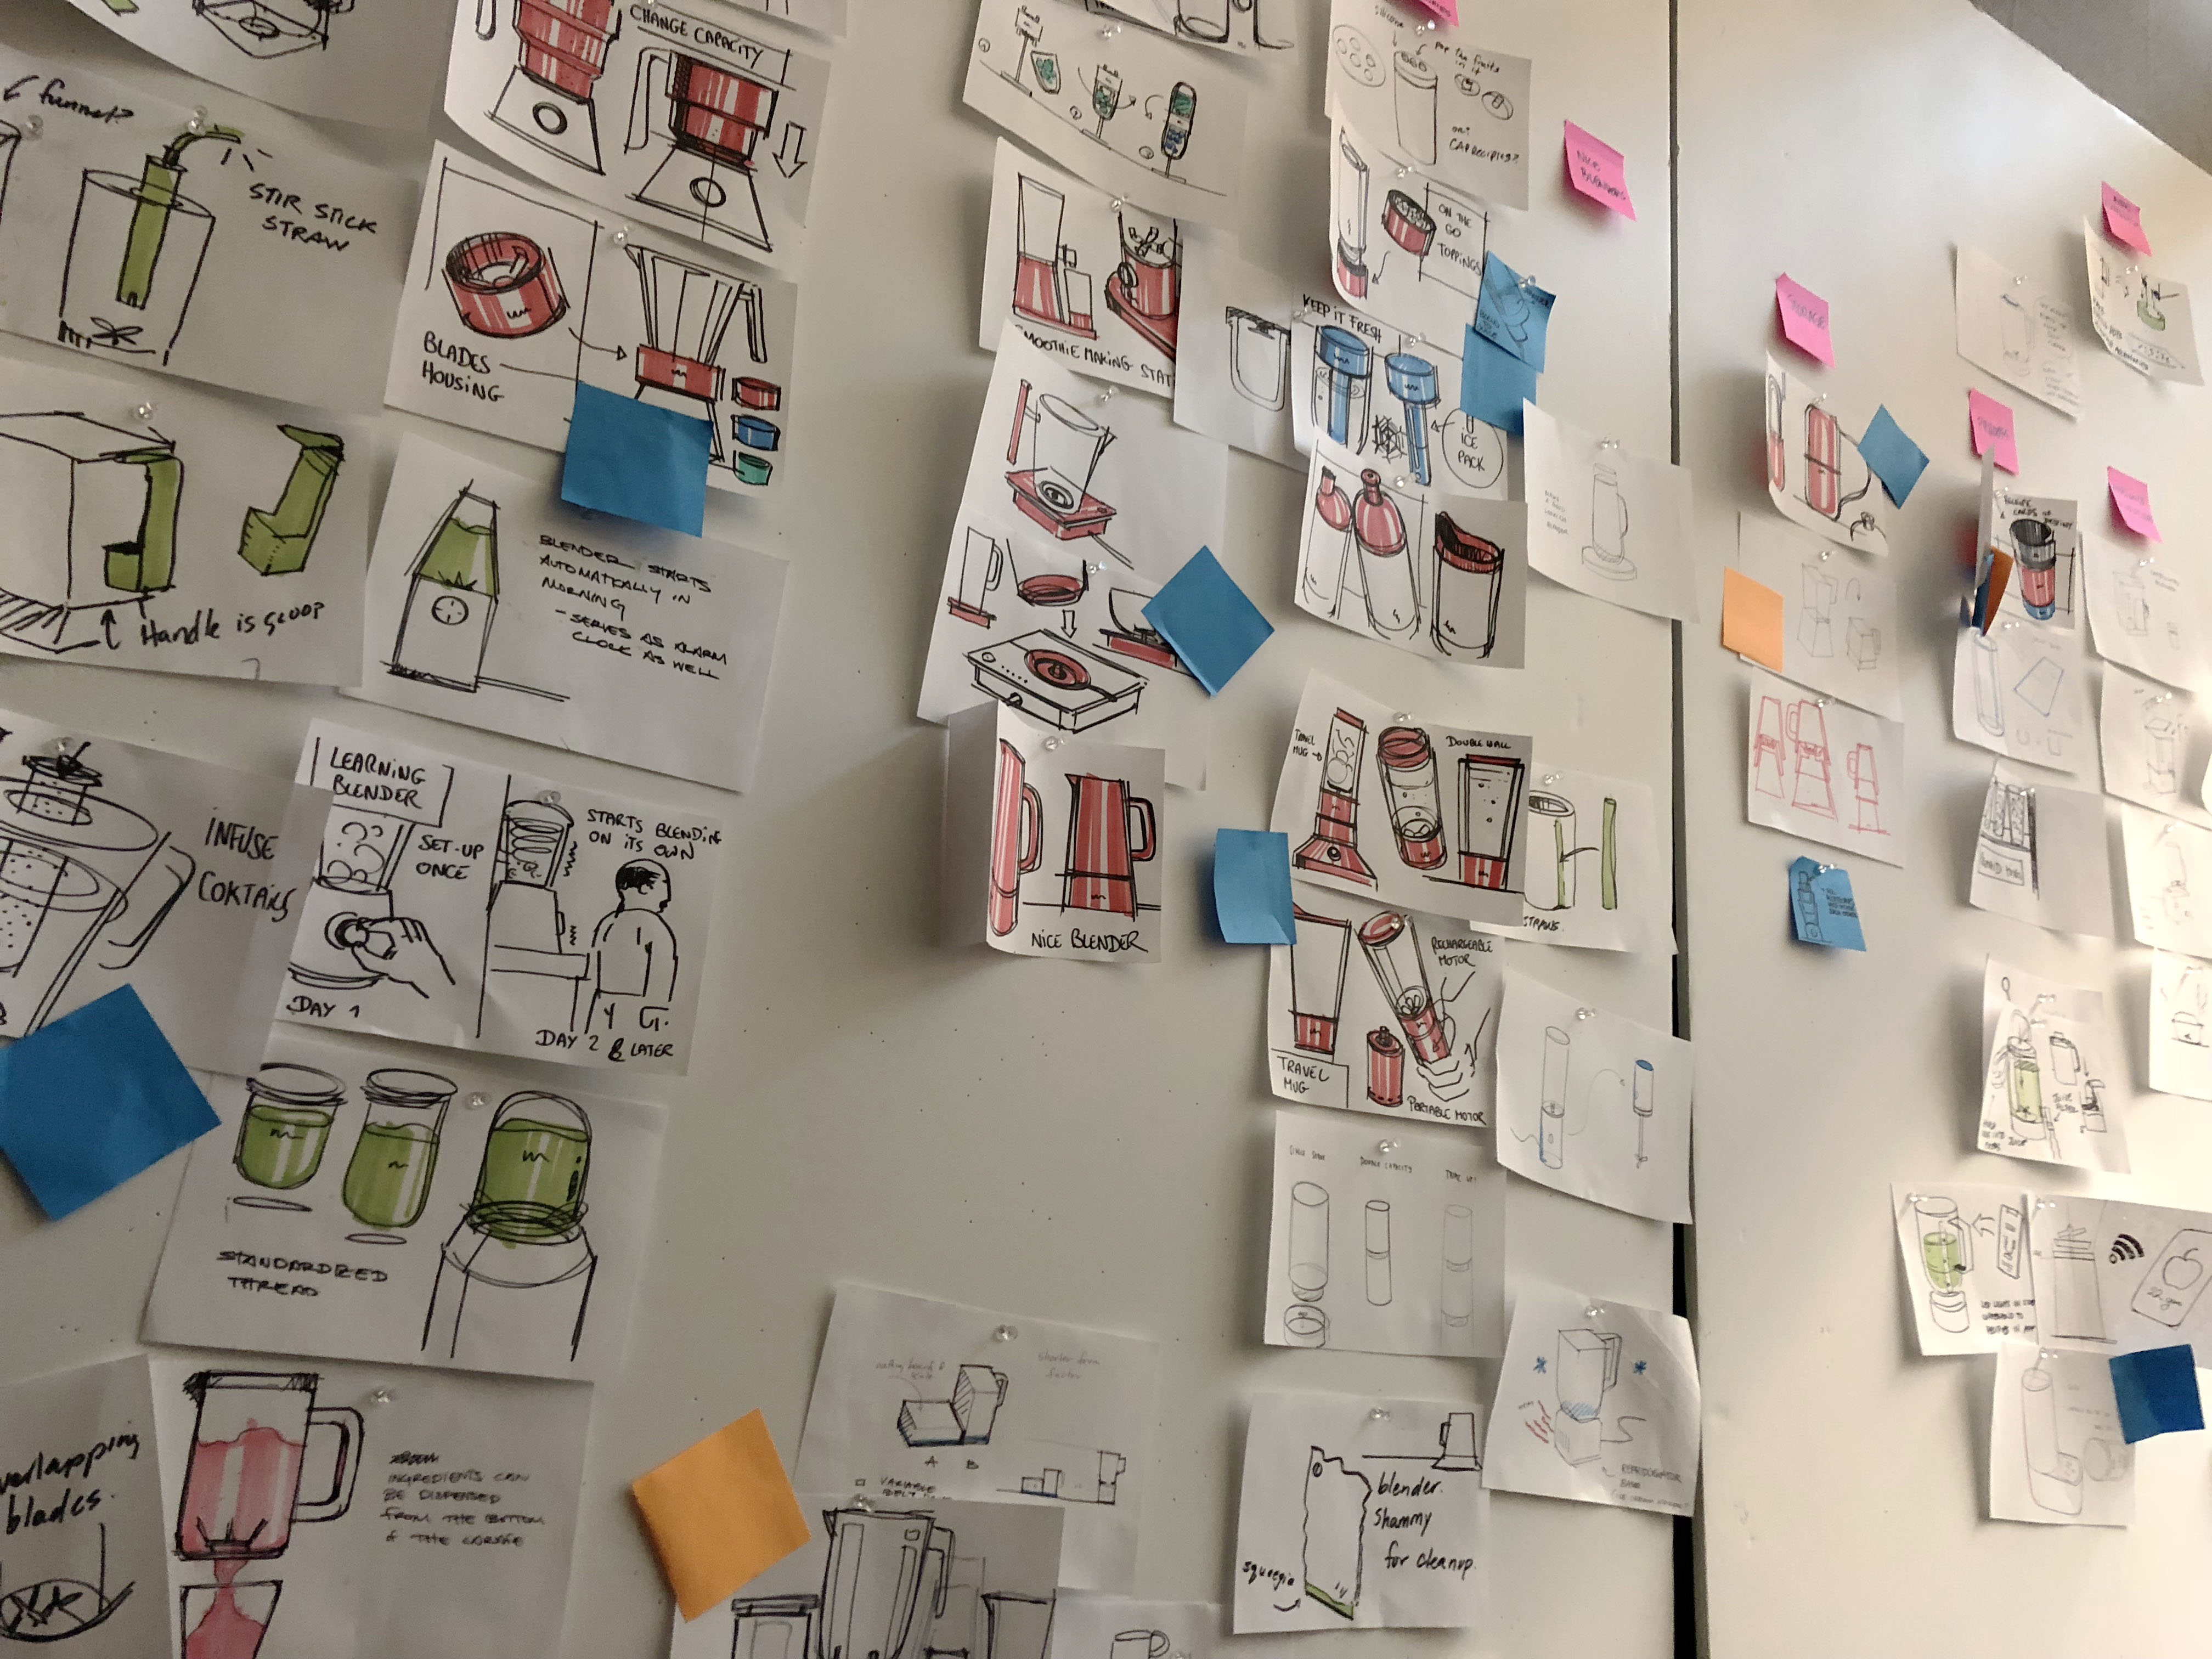 sketch thinking design thinking white board rapid develop process design marker idea post it note ideation industrial design outline process organize